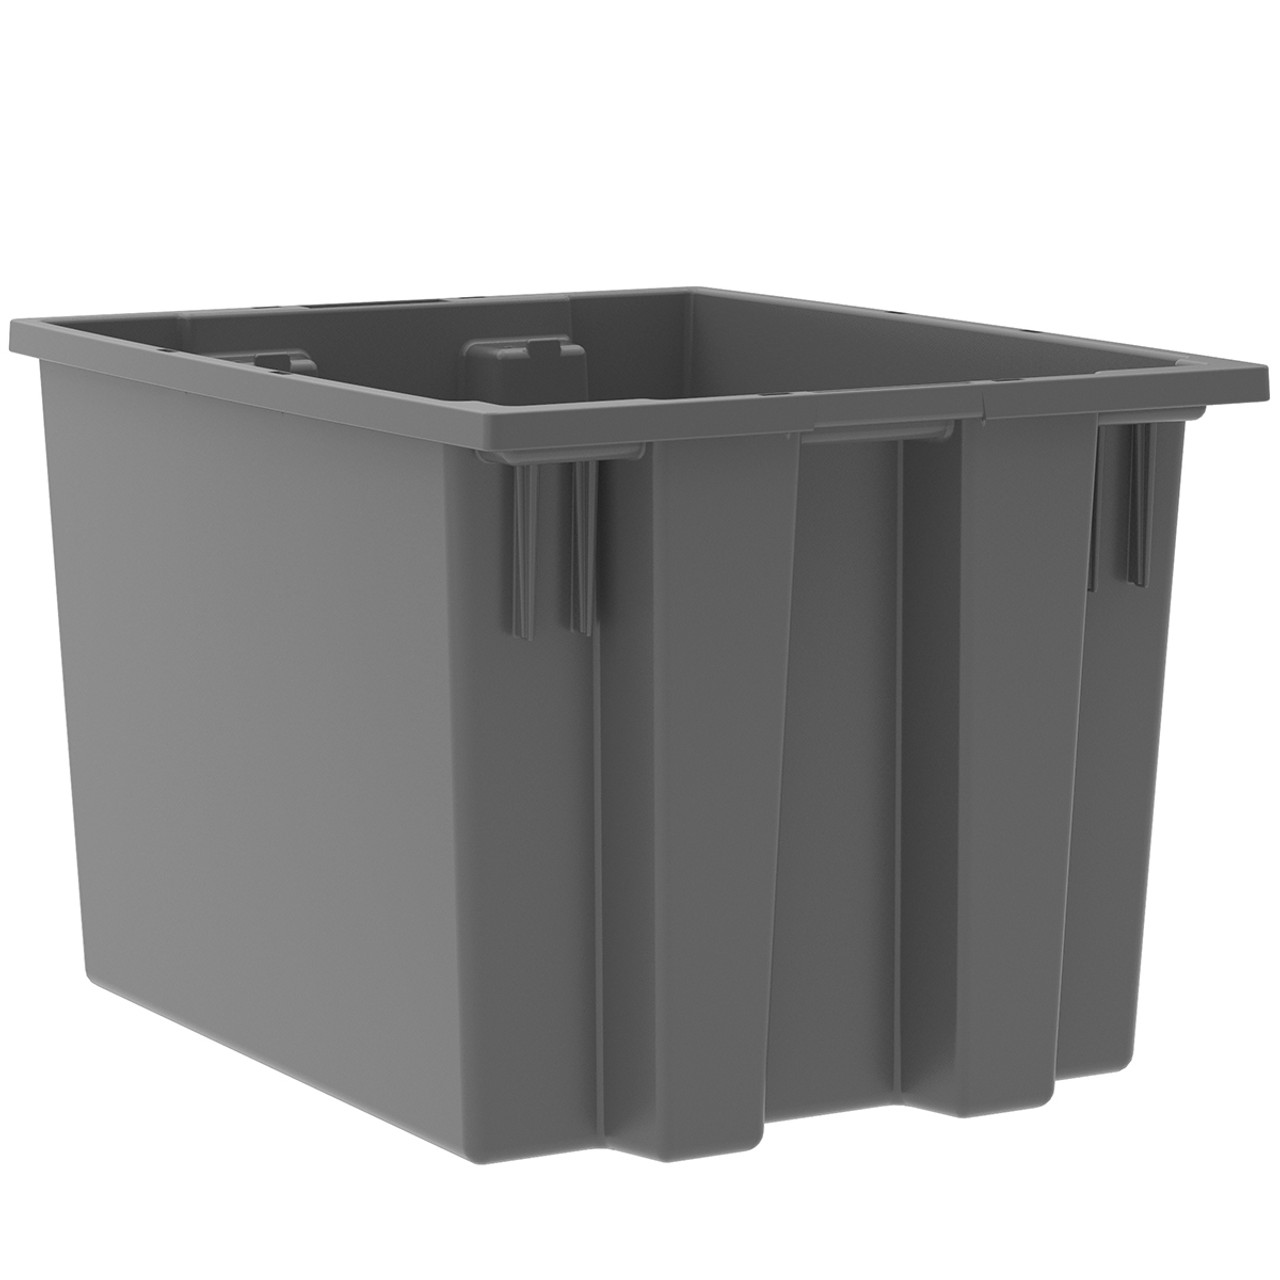 Tote, Nest & Stack Tote 19-1/2 x 15-1/2 x 13  35195GREY